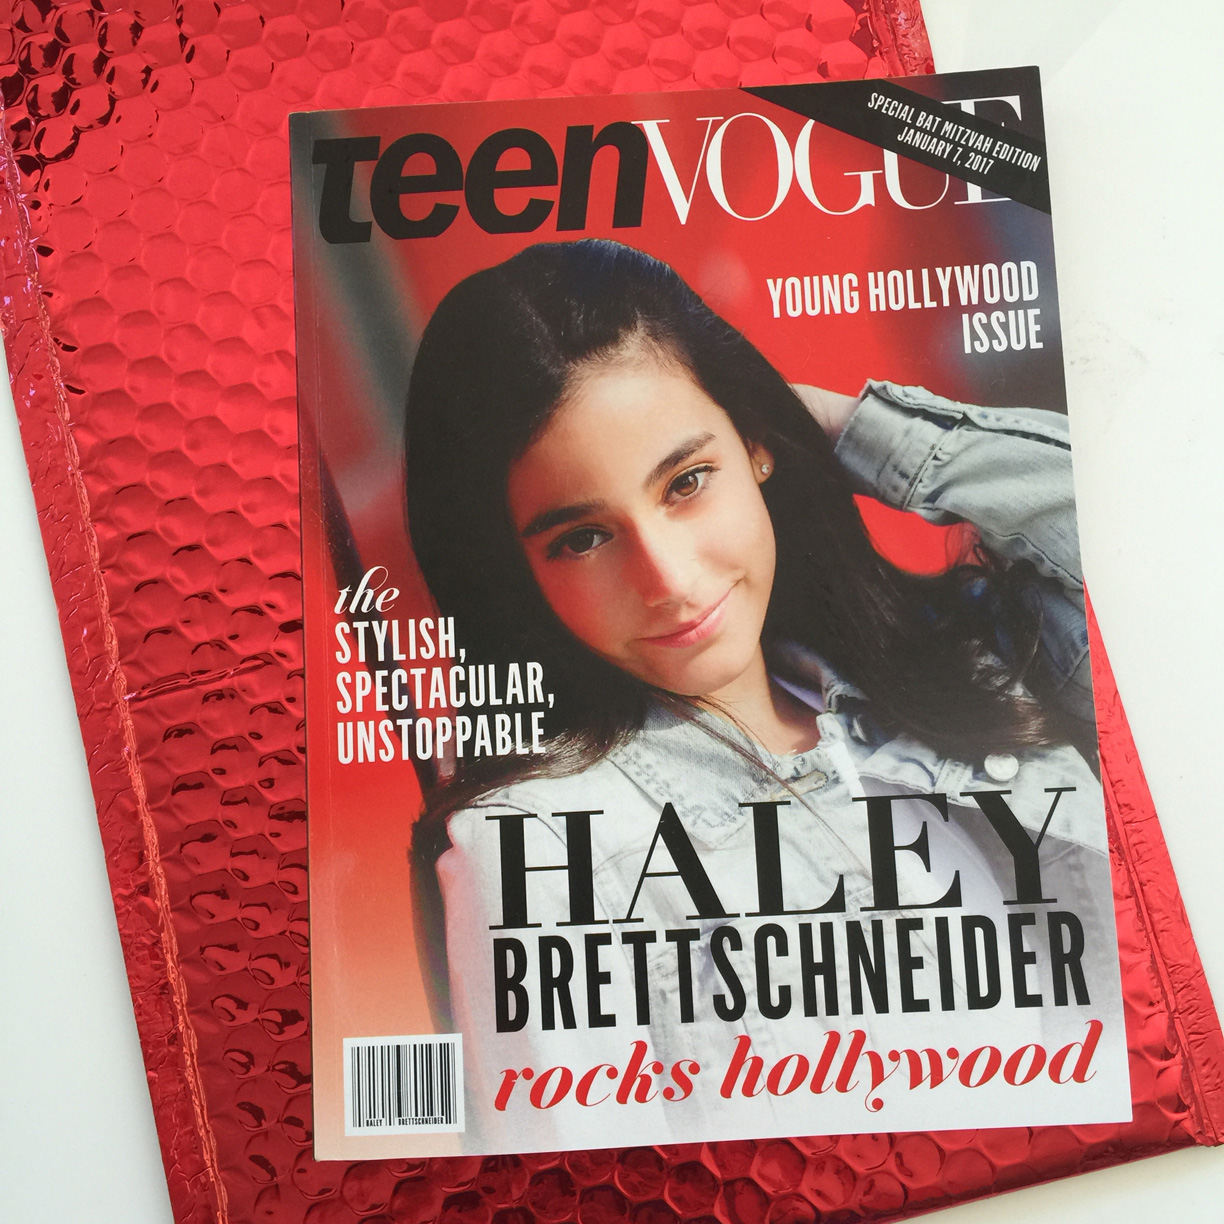 Haley  \\ When your invitation should be on newsstands because your Bat Mitzvah is so fashion-forward.A magazine complete with the amazing Bat Mitzvah girl featured on the cover as well as in the ads!